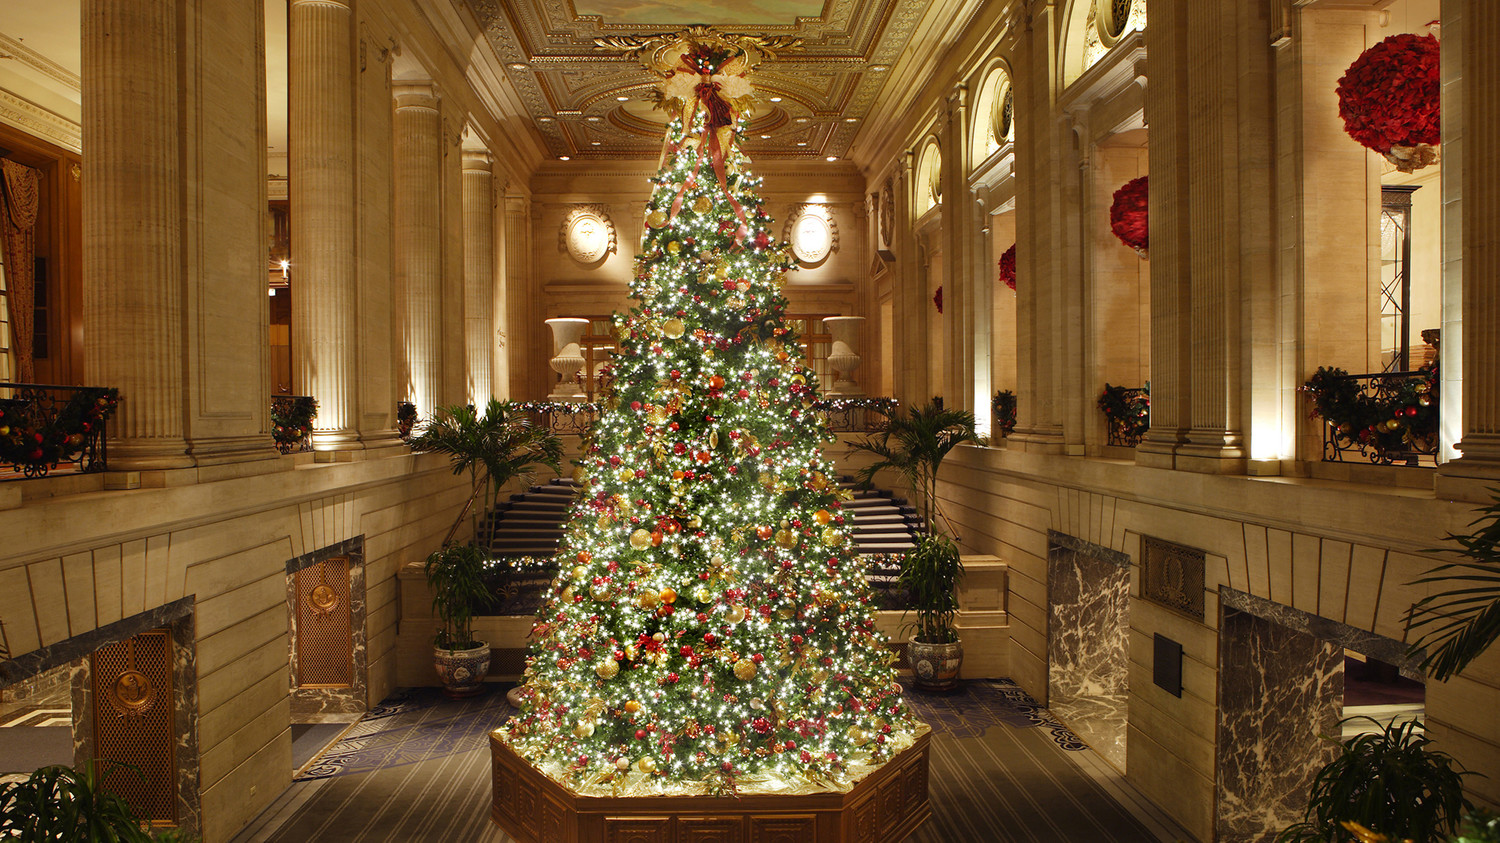 10 hotels with over the top holiday dcor martha stewart - Hotel Christmas Decorations